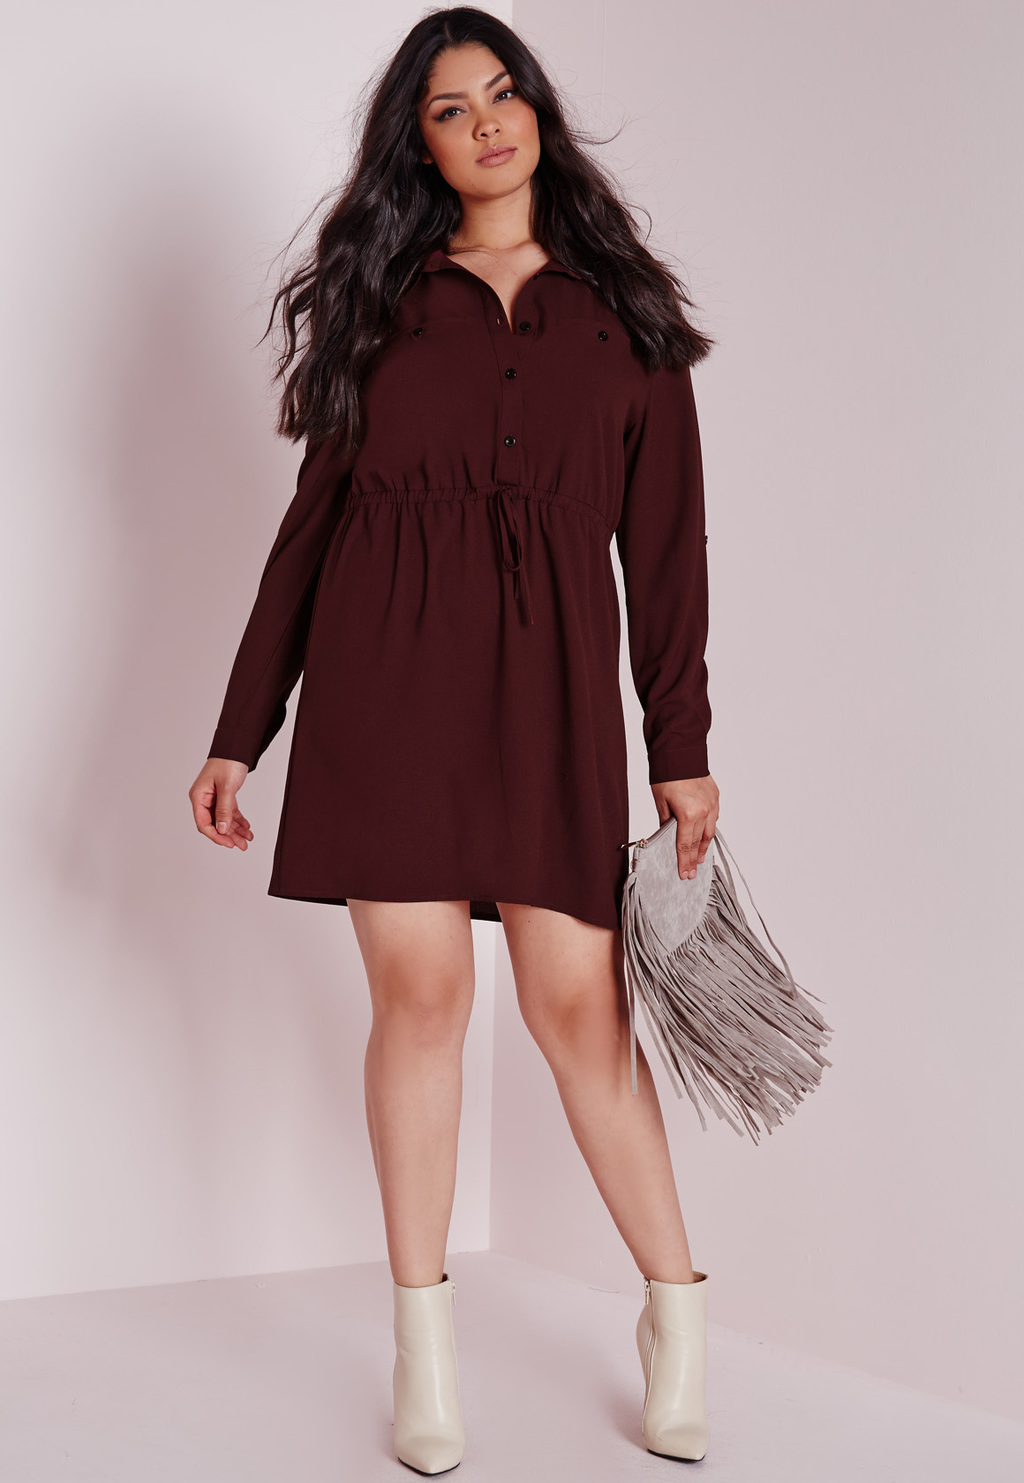 Plus Size Drawstring Waist Shirt Dress Burgundy, Burgundy - style: shirt; length: mid thigh; neckline: shirt collar/peter pan/zip with opening; fit: fitted at waist; pattern: plain; waist detail: elasticated waist; predominant colour: burgundy; occasions: evening; fibres: polyester/polyamide - stretch; sleeve length: long sleeve; sleeve style: standard; texture group: crepes; pattern type: fabric; season: a/w 2015; wardrobe: event